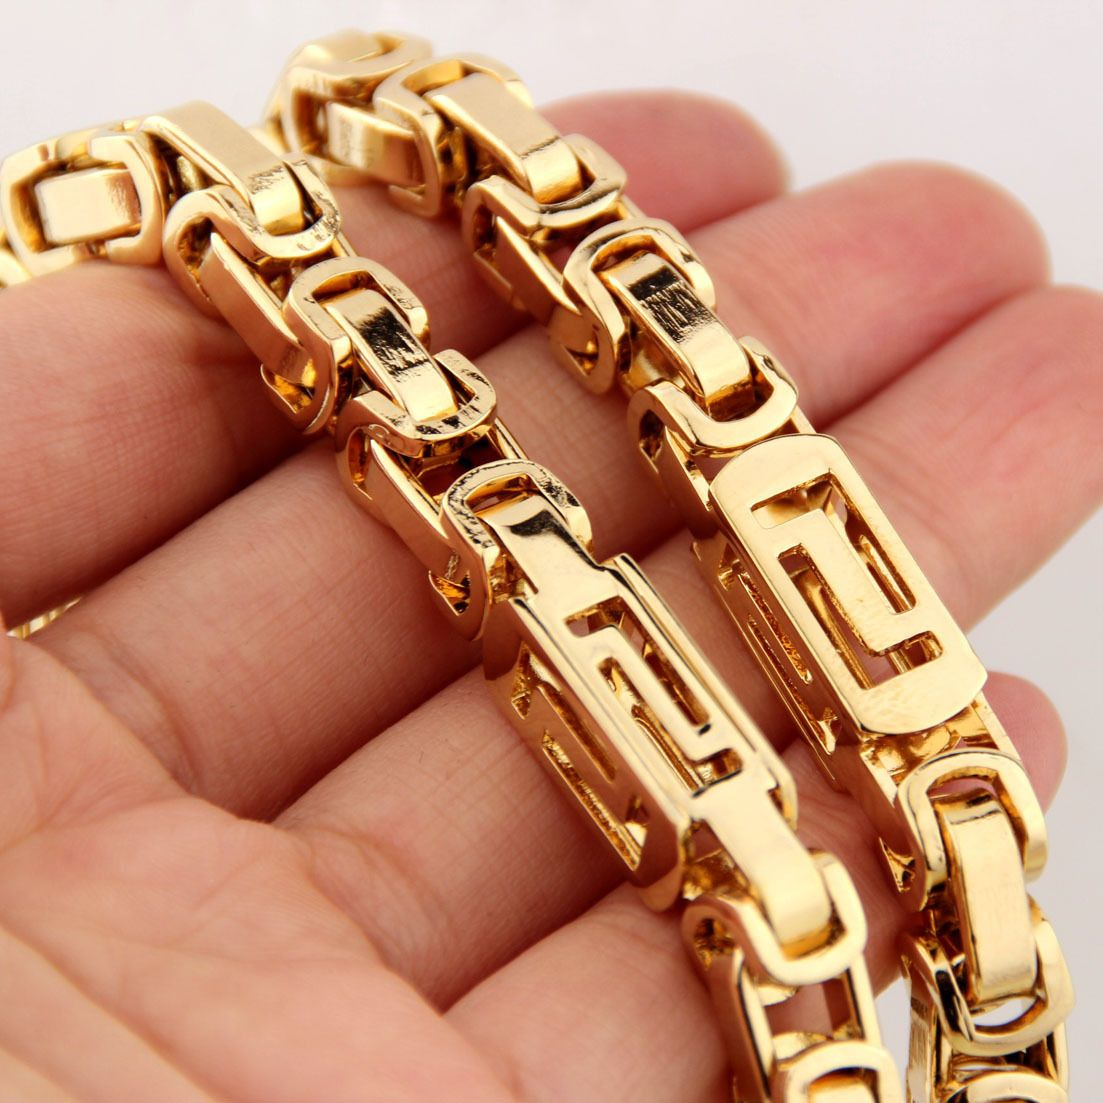 MENDINO Mens Jewellery Byzantine Box Width 5mm-8mm Link Chain Gold 316L Stainless Steel Necklace